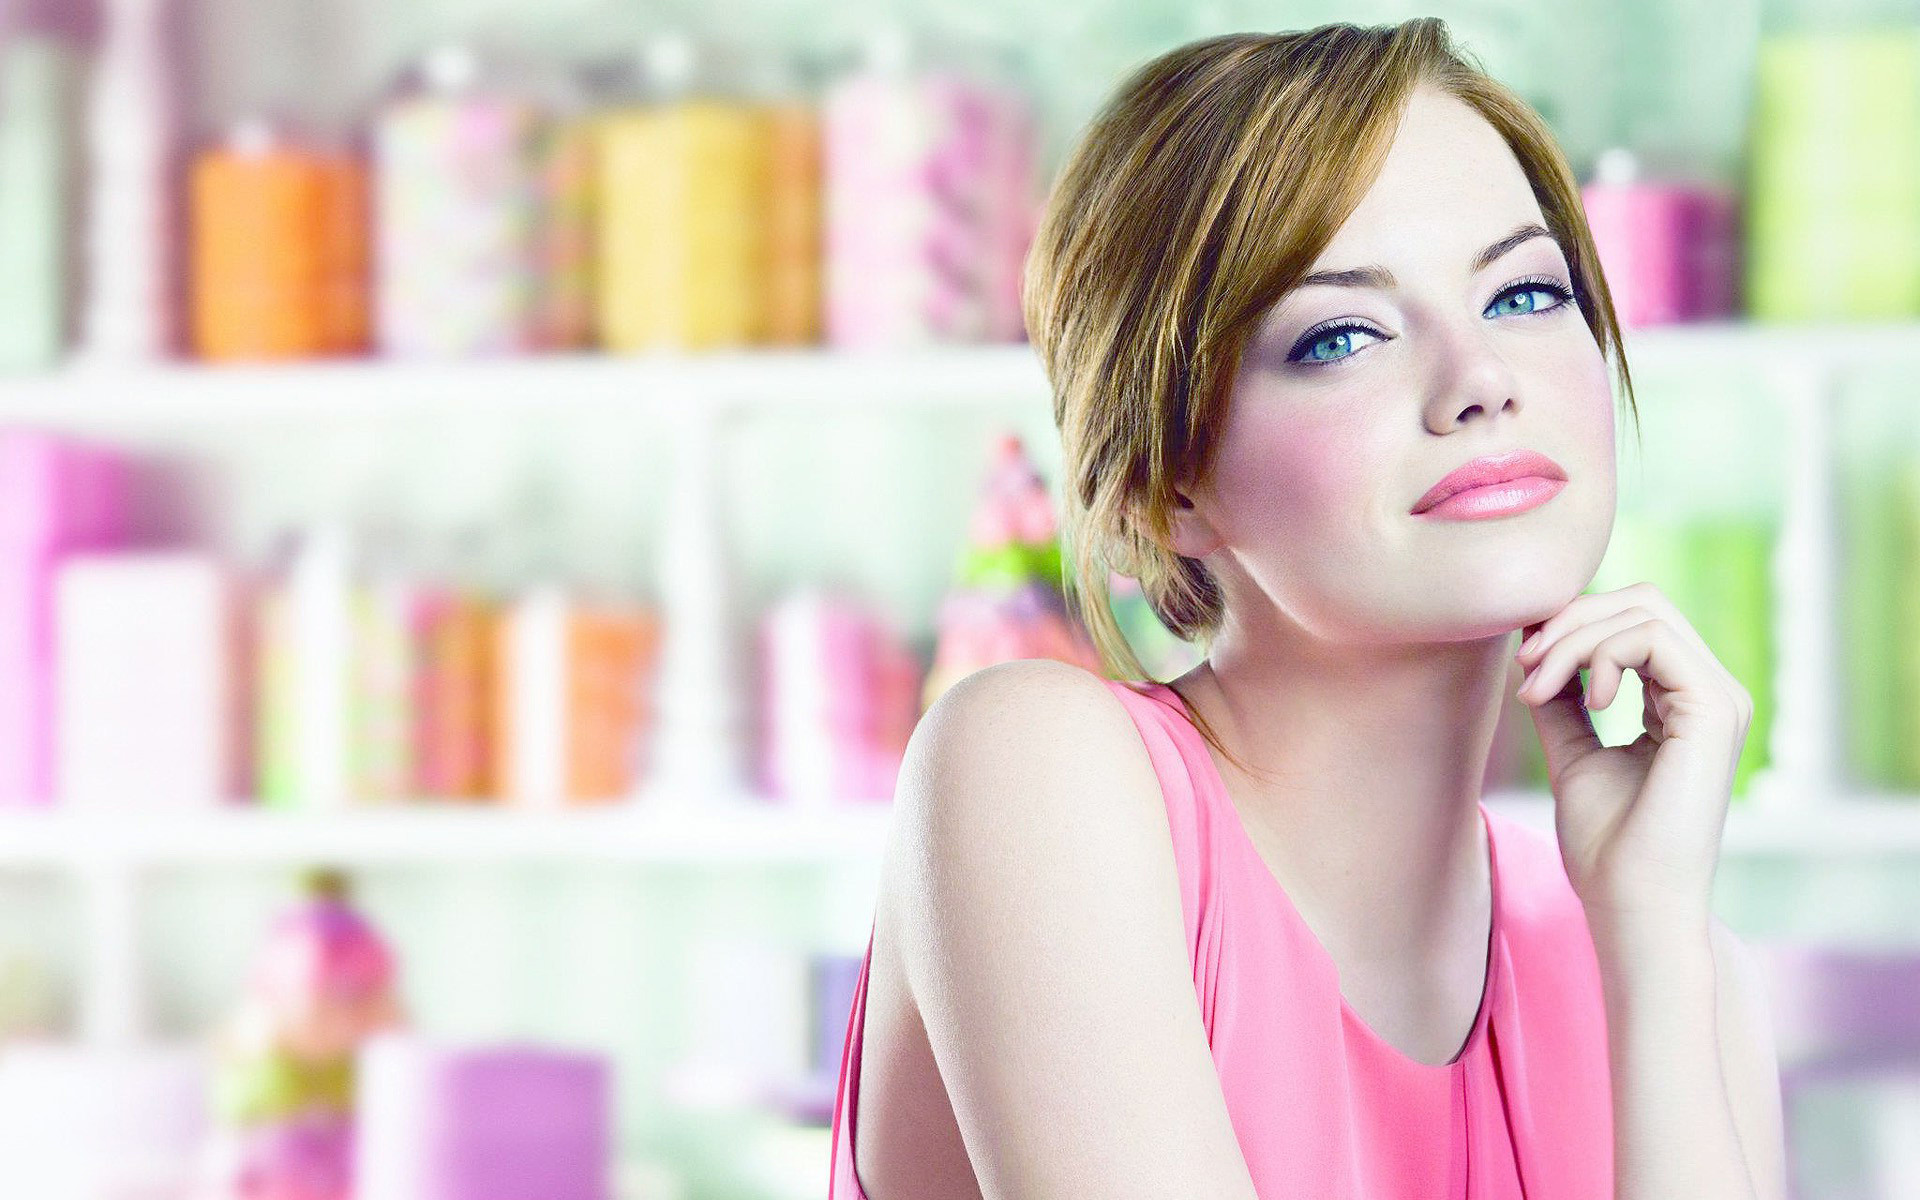 Spider Man Actress Emma Stone Wallpapers | HD Wallpapers